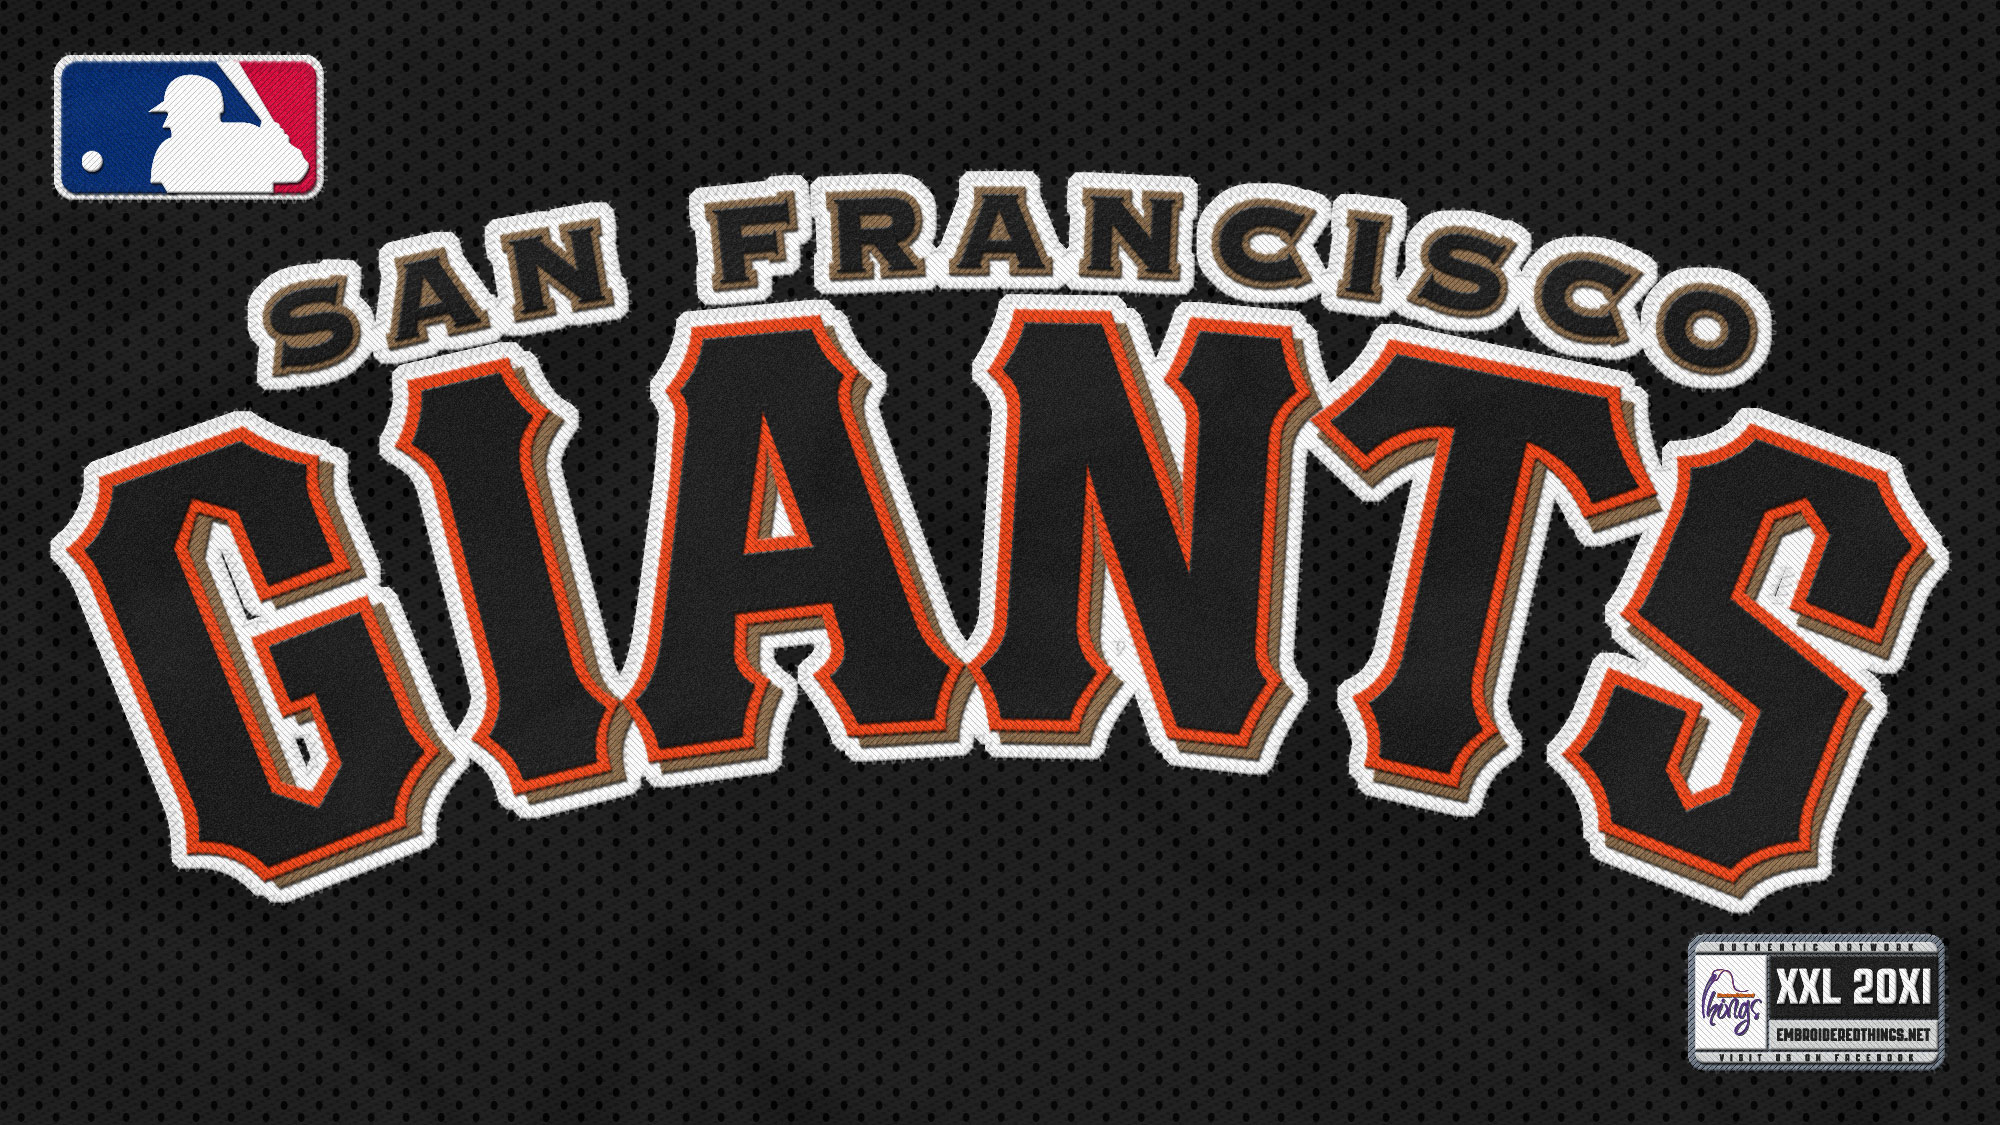 sf giants wallpaper iphone 5